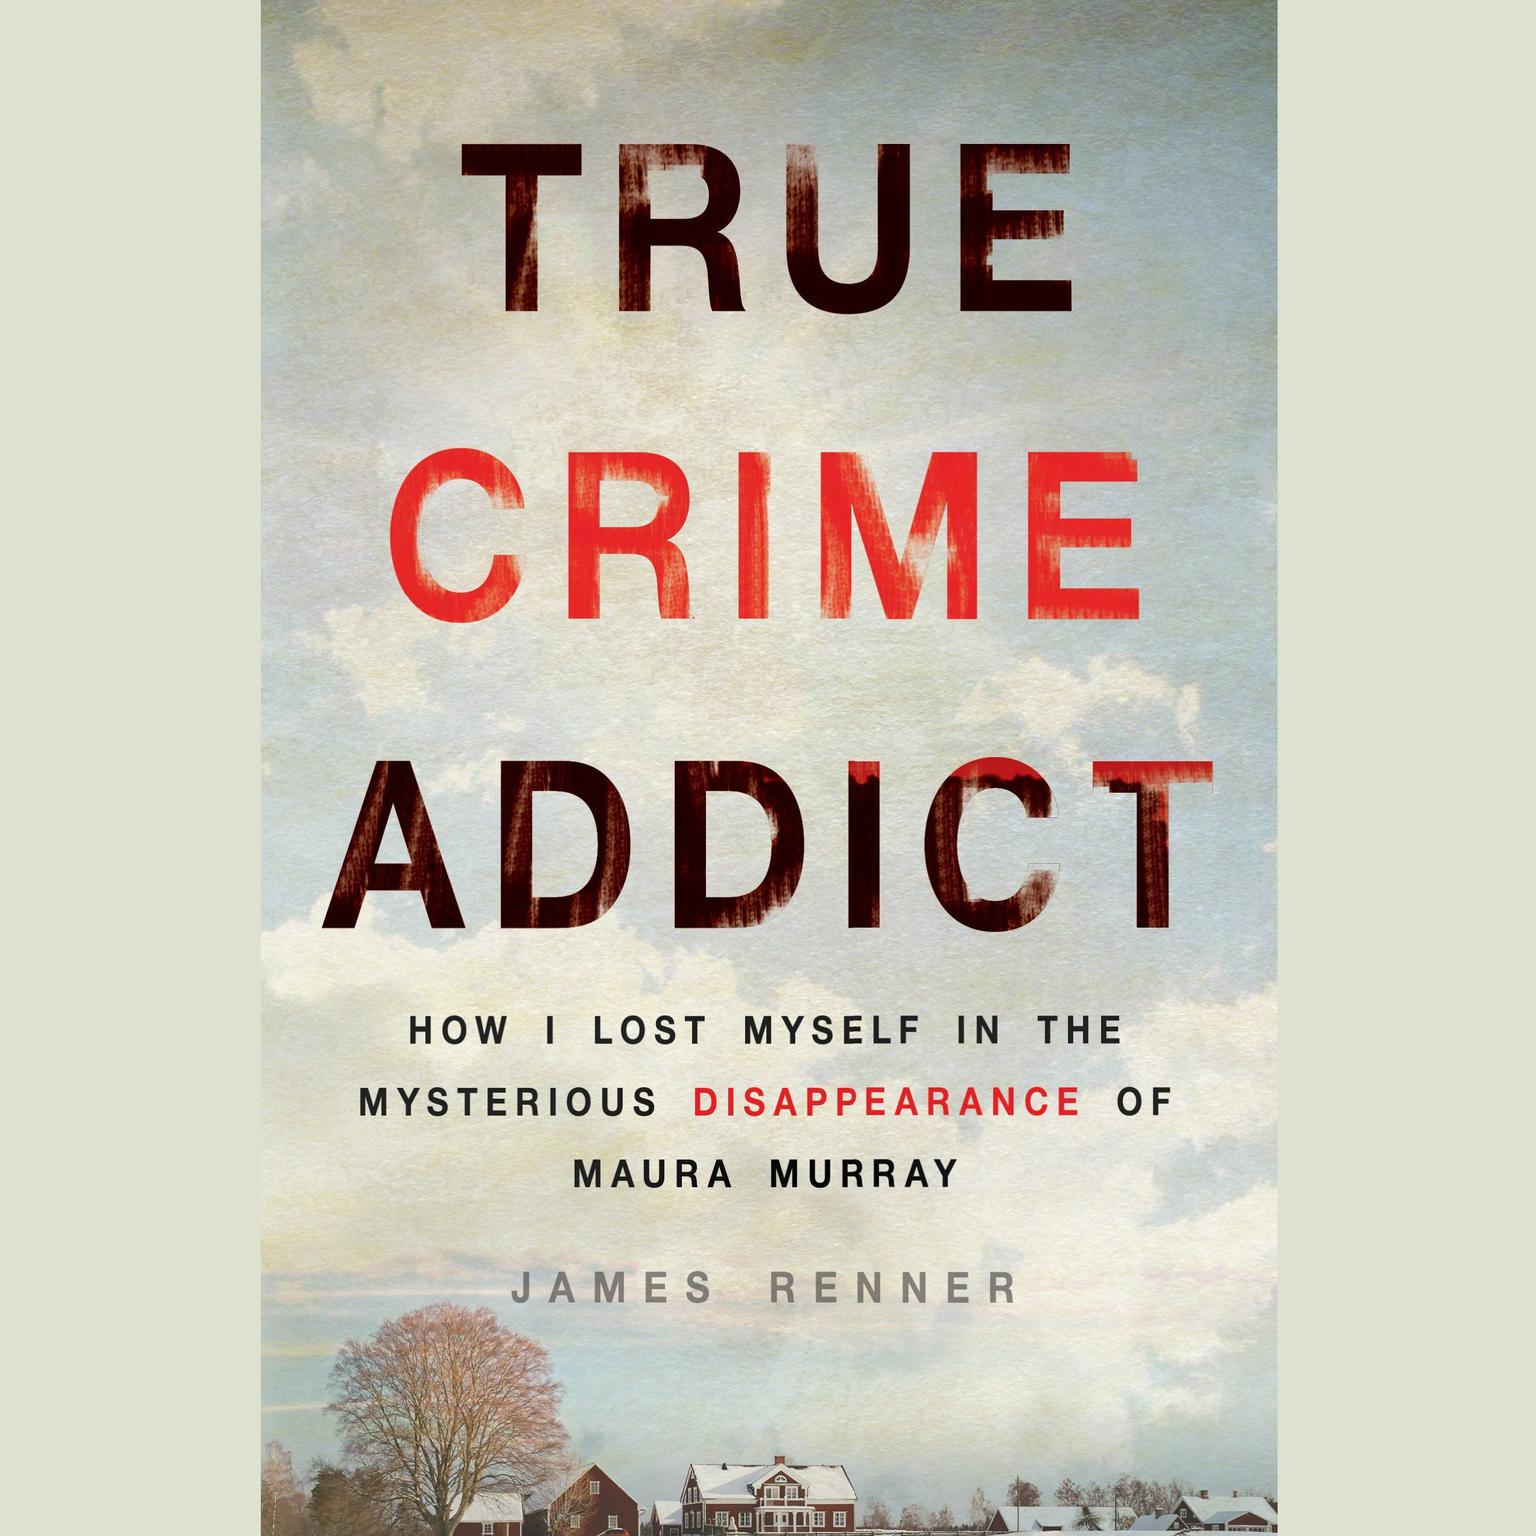 Printable True Crime Addict: How I Lost Myself in the Mysterious Disappearance of Maura Murray Audiobook Cover Art